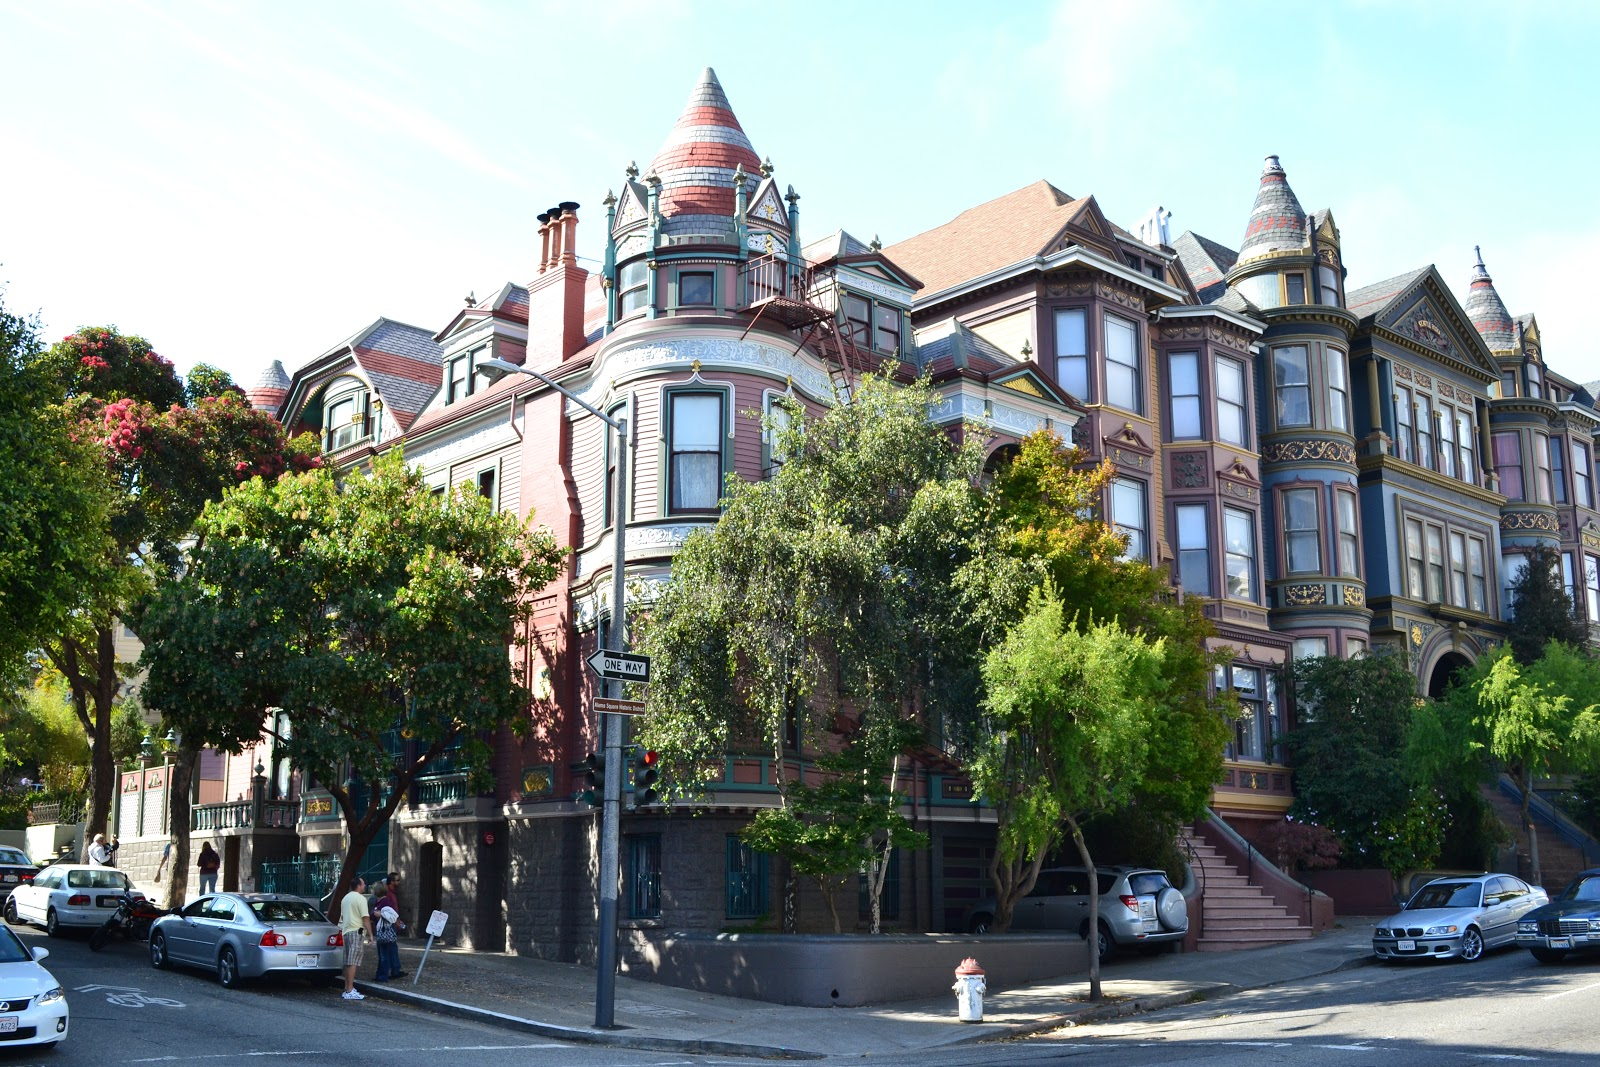 Chateau Tivoli, built in 1892 and now a B&B, is a classic example of the city's iconic late-19th-century architecture.